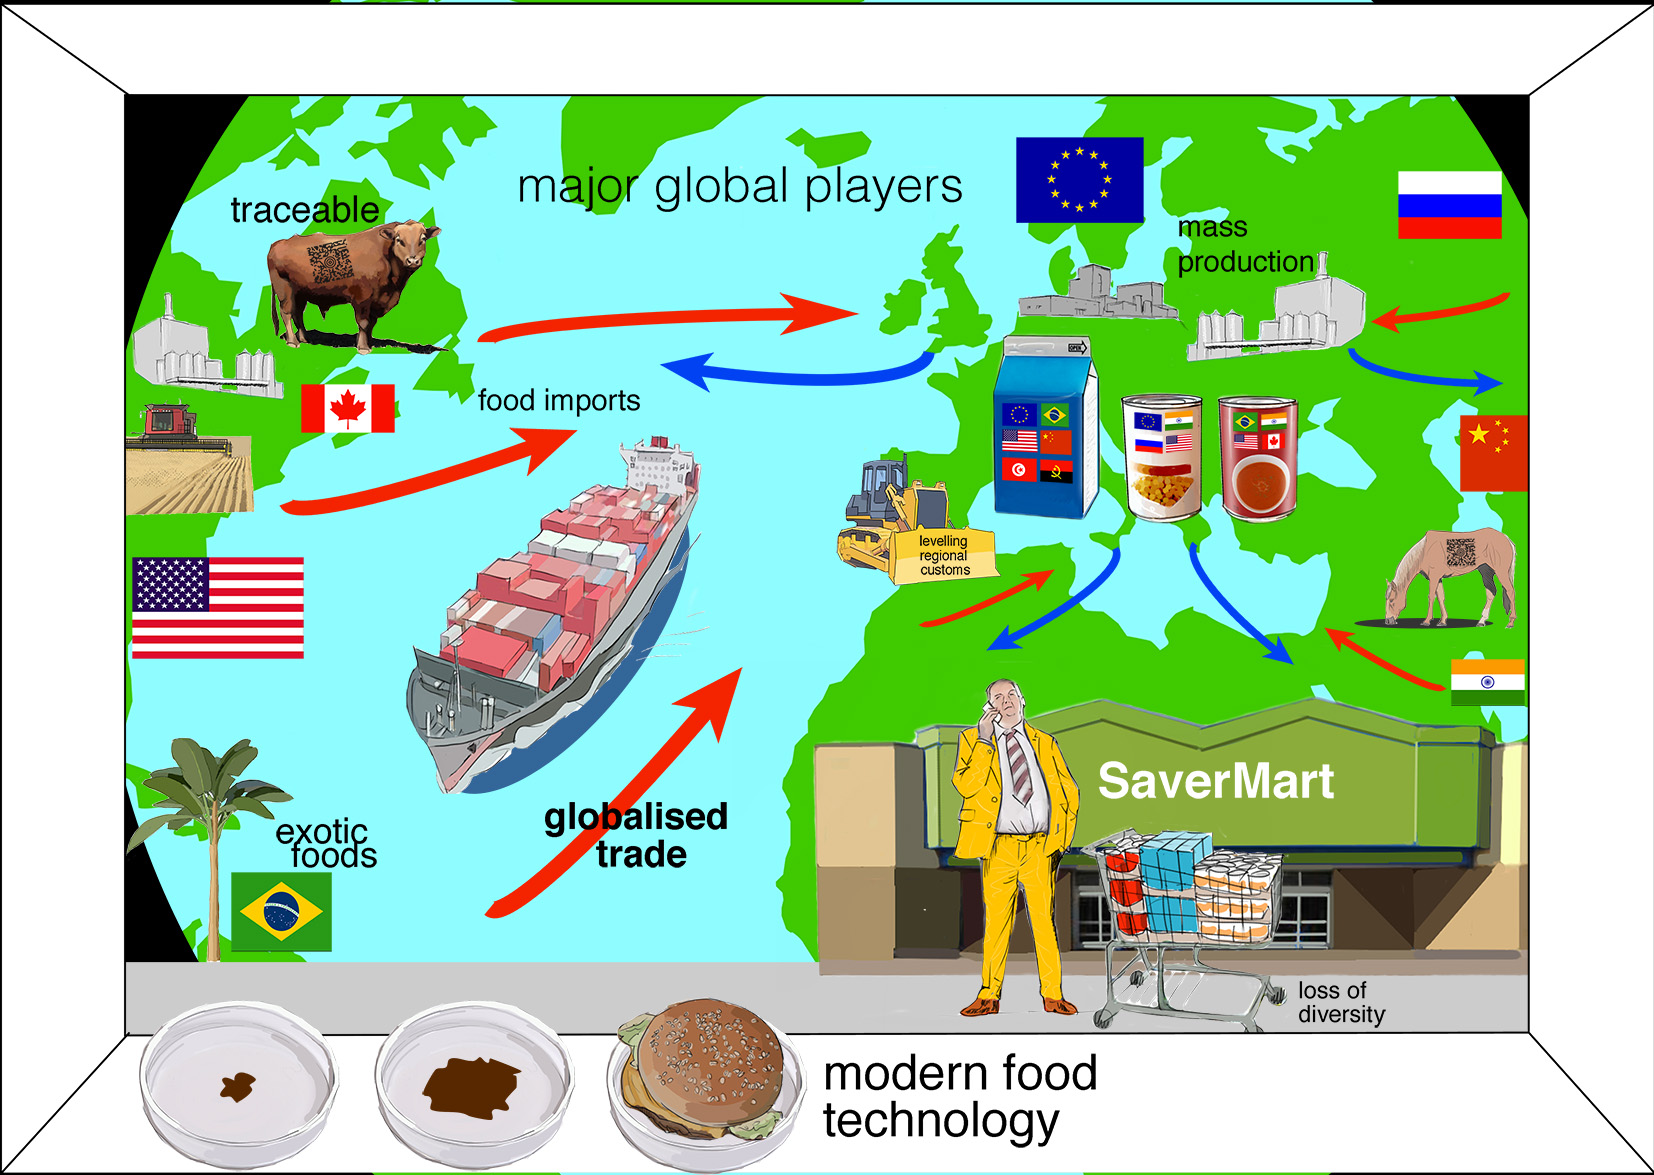 Scarcity Of Natural Resources In Relation To Food